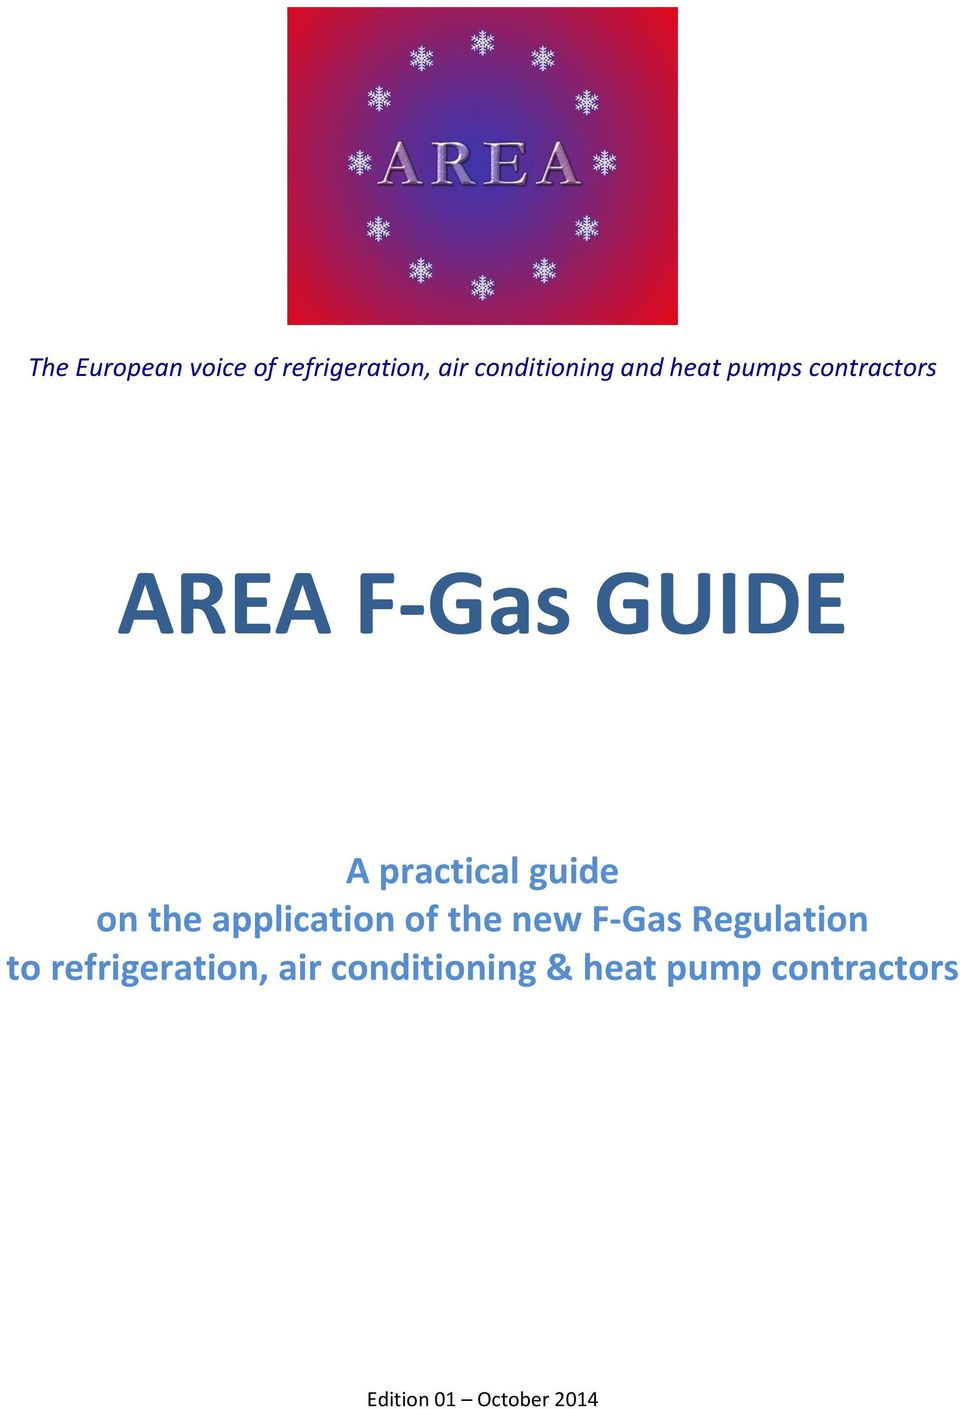 the application of the new F-Gas Regulation to refrigeration,